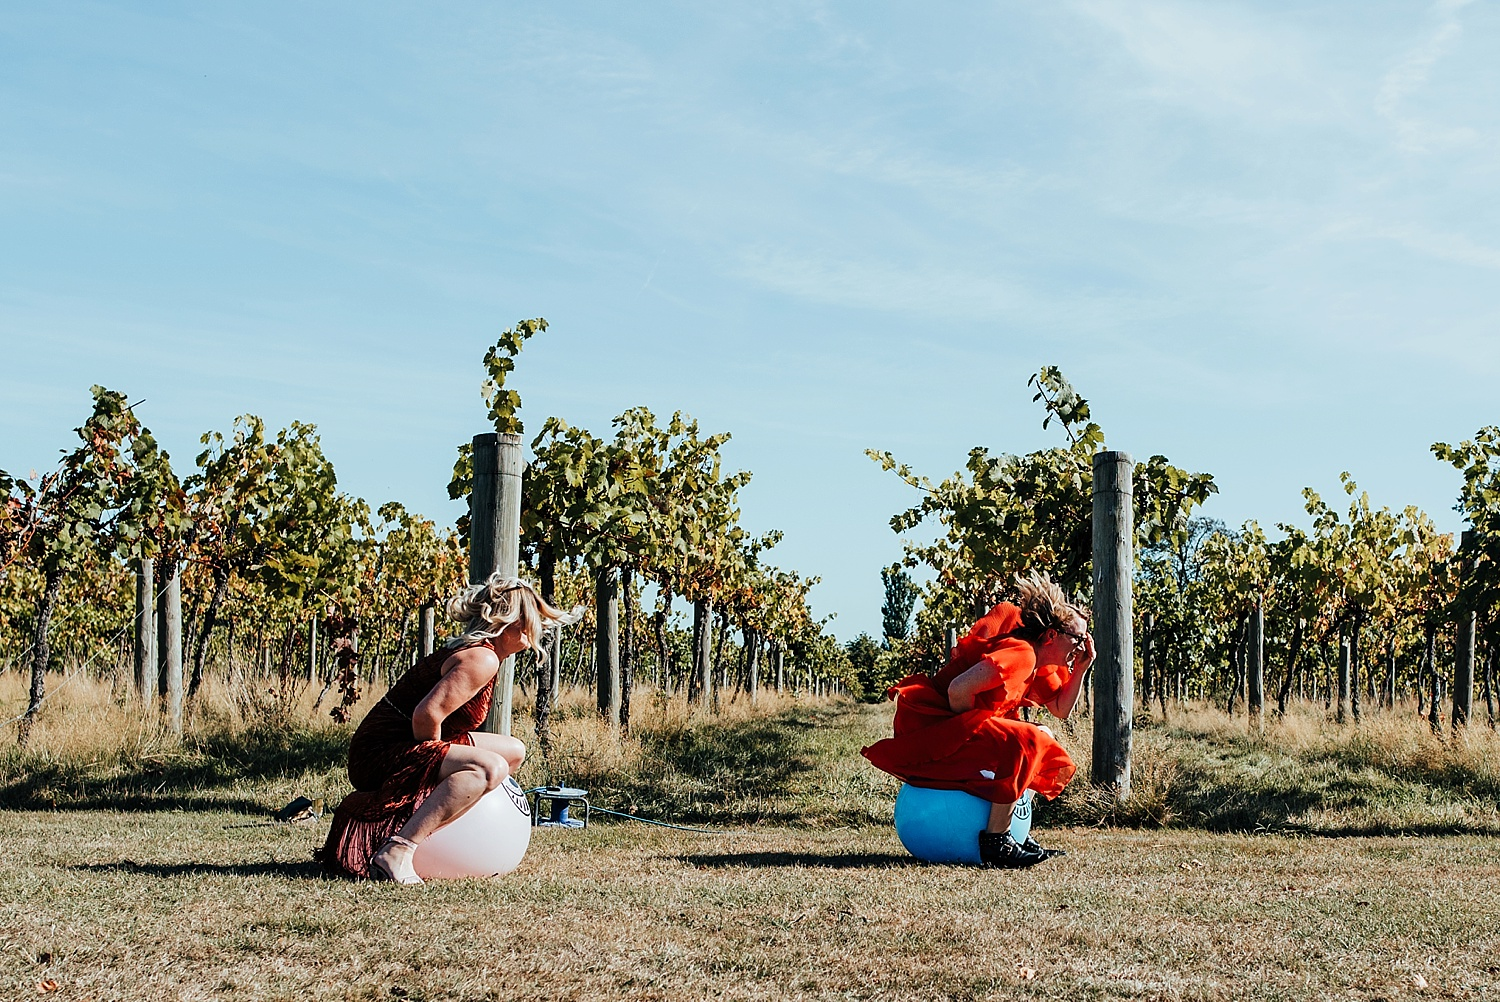 two woman bouncing on space hoppers in vineyard Stanlake Park